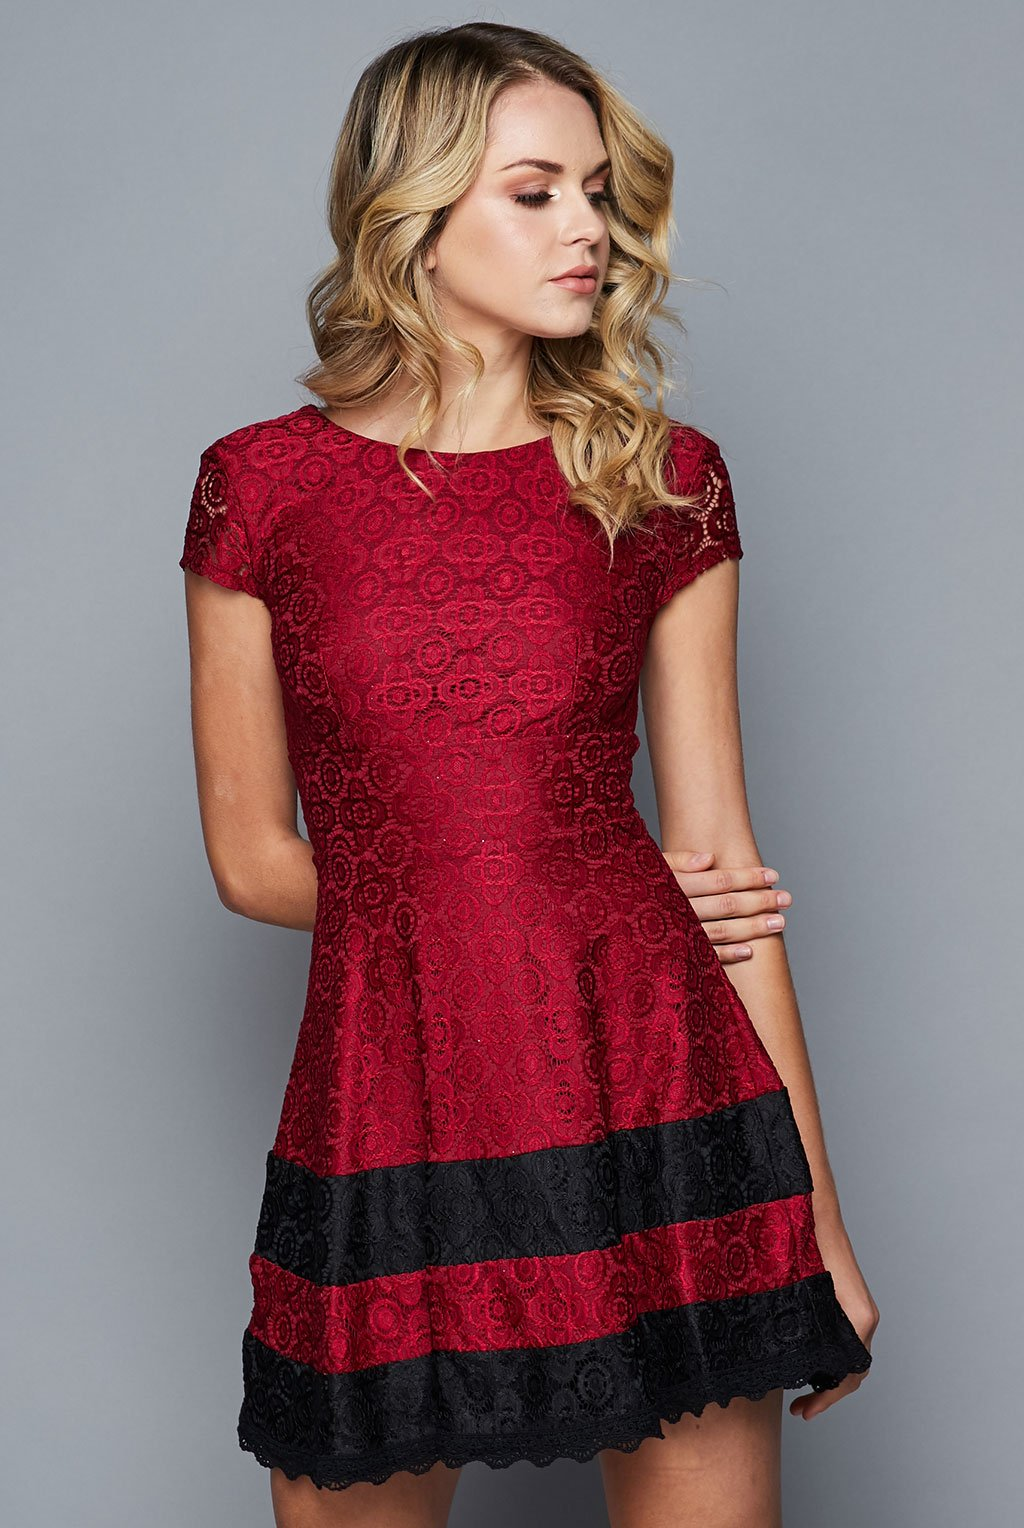 Teeze Me | Fit And Flare Lace Scallop Hem Dress  | Burgundy/Black | Teeze Me Juniors Apparel